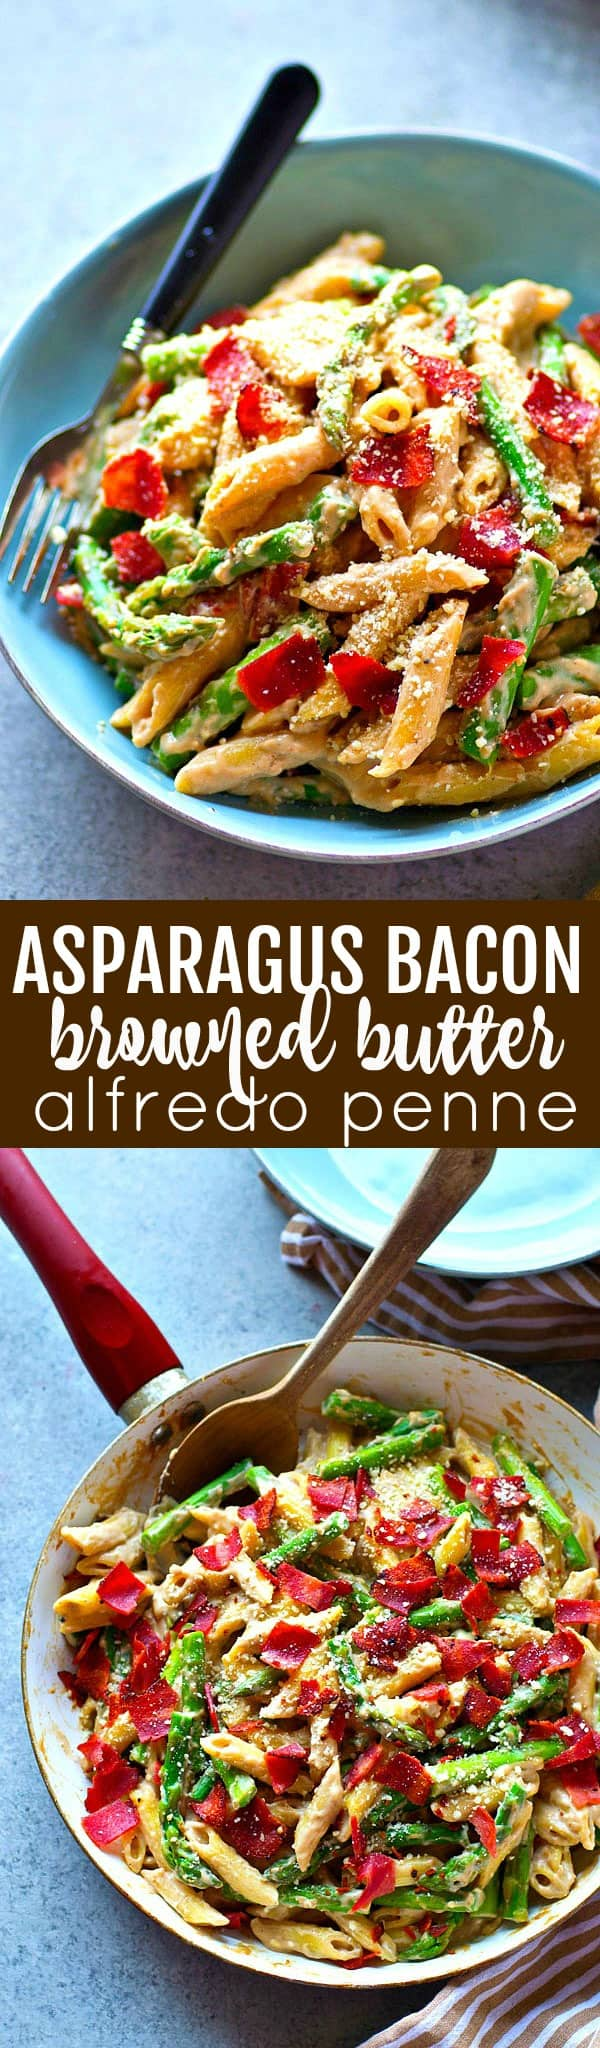 Flavorful browned butter and tons of asparagus and crispy bacon transform this creamy alfredo penne into a KILLER spring side dish that will quickly become a dinner regular.